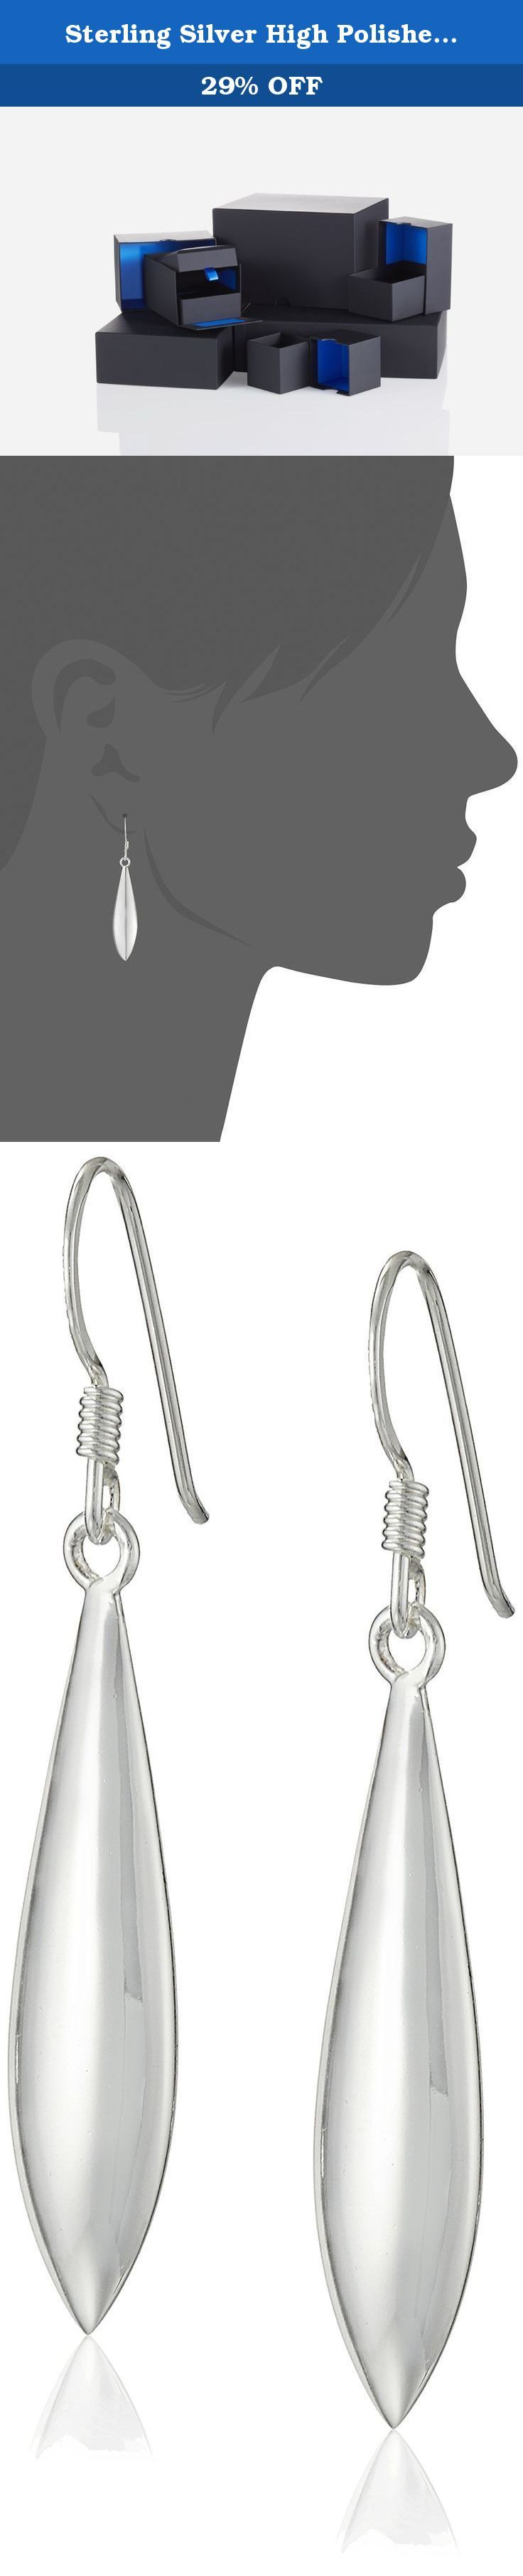 Sterling Silver High Polished Elongated Oval Puff Drop French Wire Earrings. Tapered teardrop shapes of brightly polished sterling silver hang from sterling hooks in these long and linear fashion earrings. Wear them anytime you want to shine.